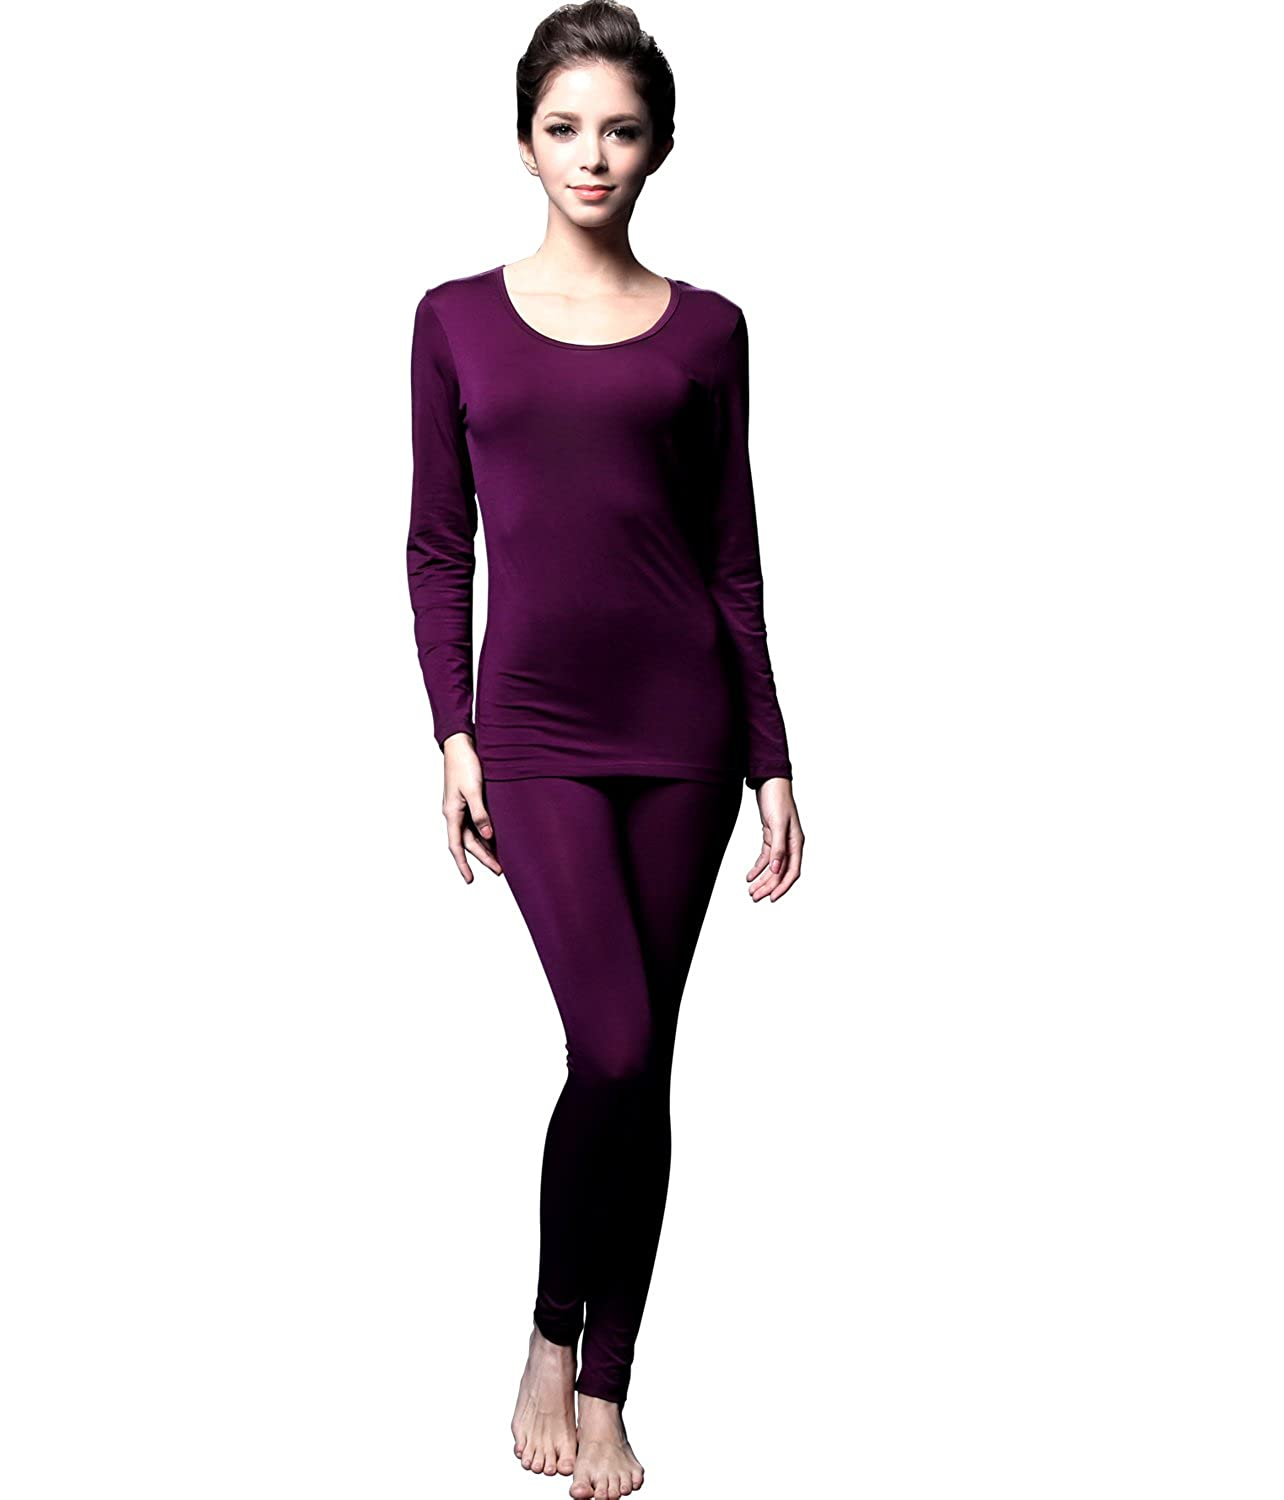 Feelvery Women's Natural Soft Tencel Long Johns Top & Bottom Thermal Underwear Set